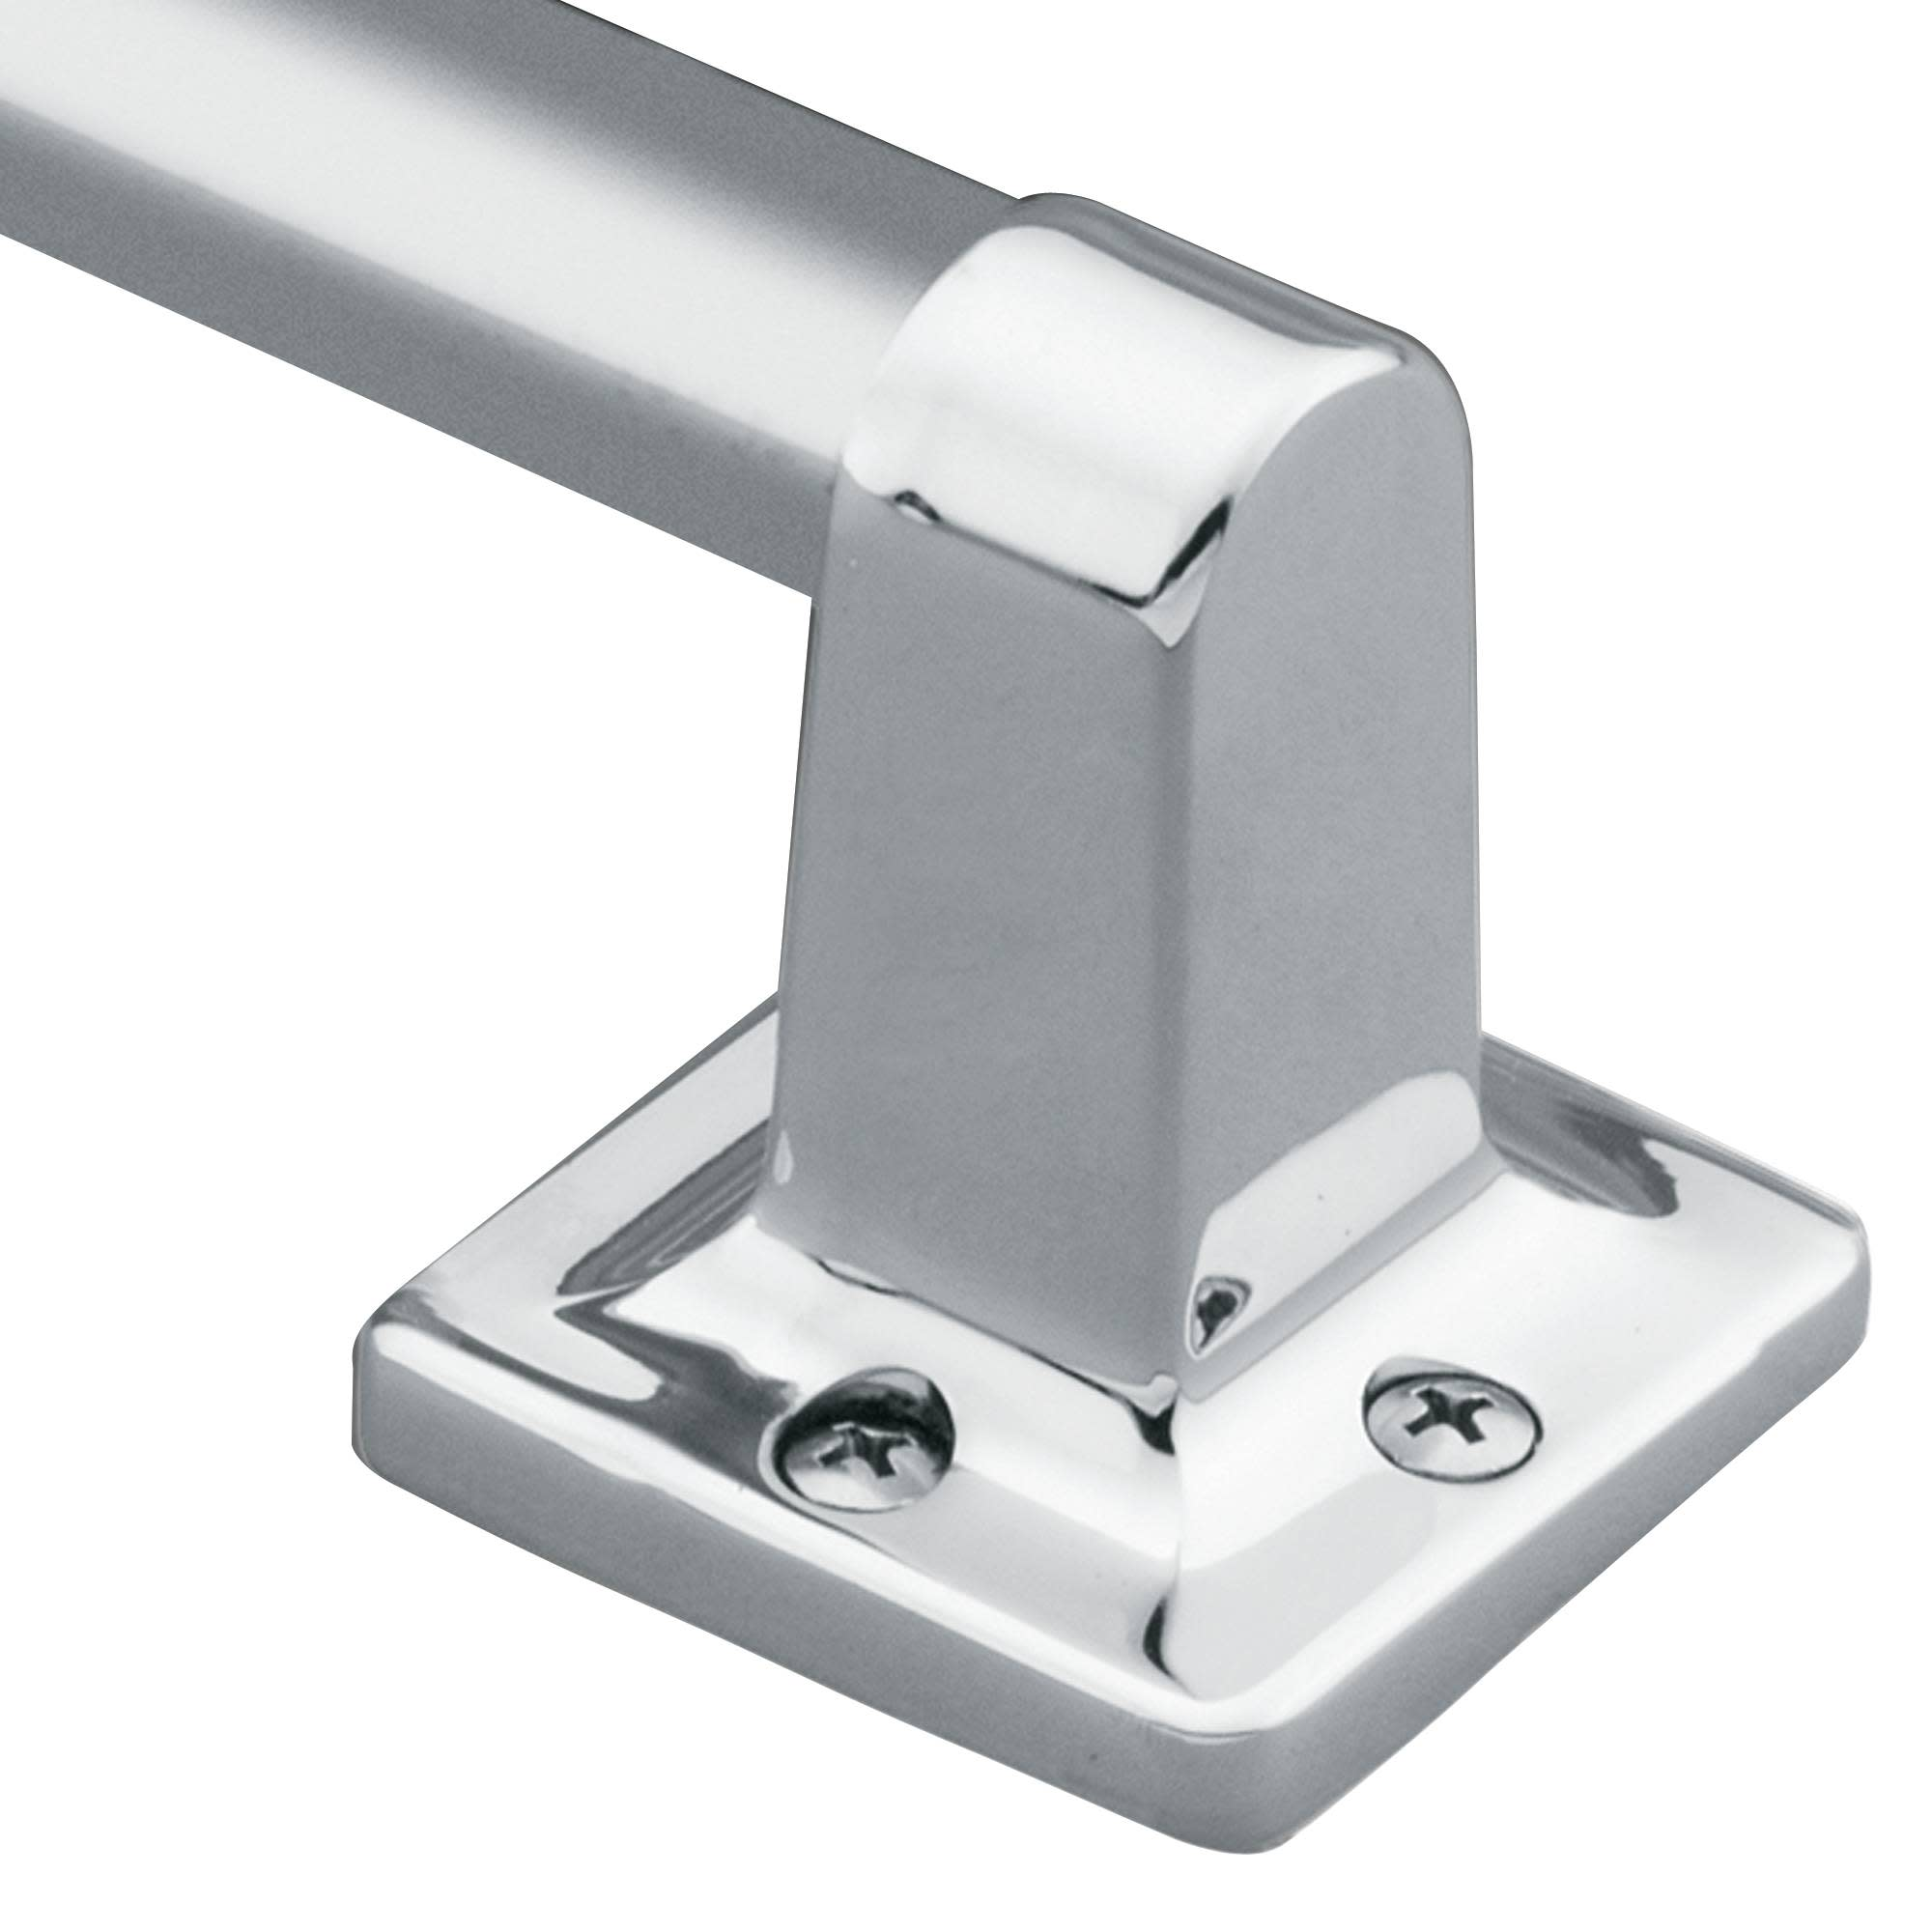 "Moen R2270 24"" x 7/8"" Hand Grip from the Home Care Collection"